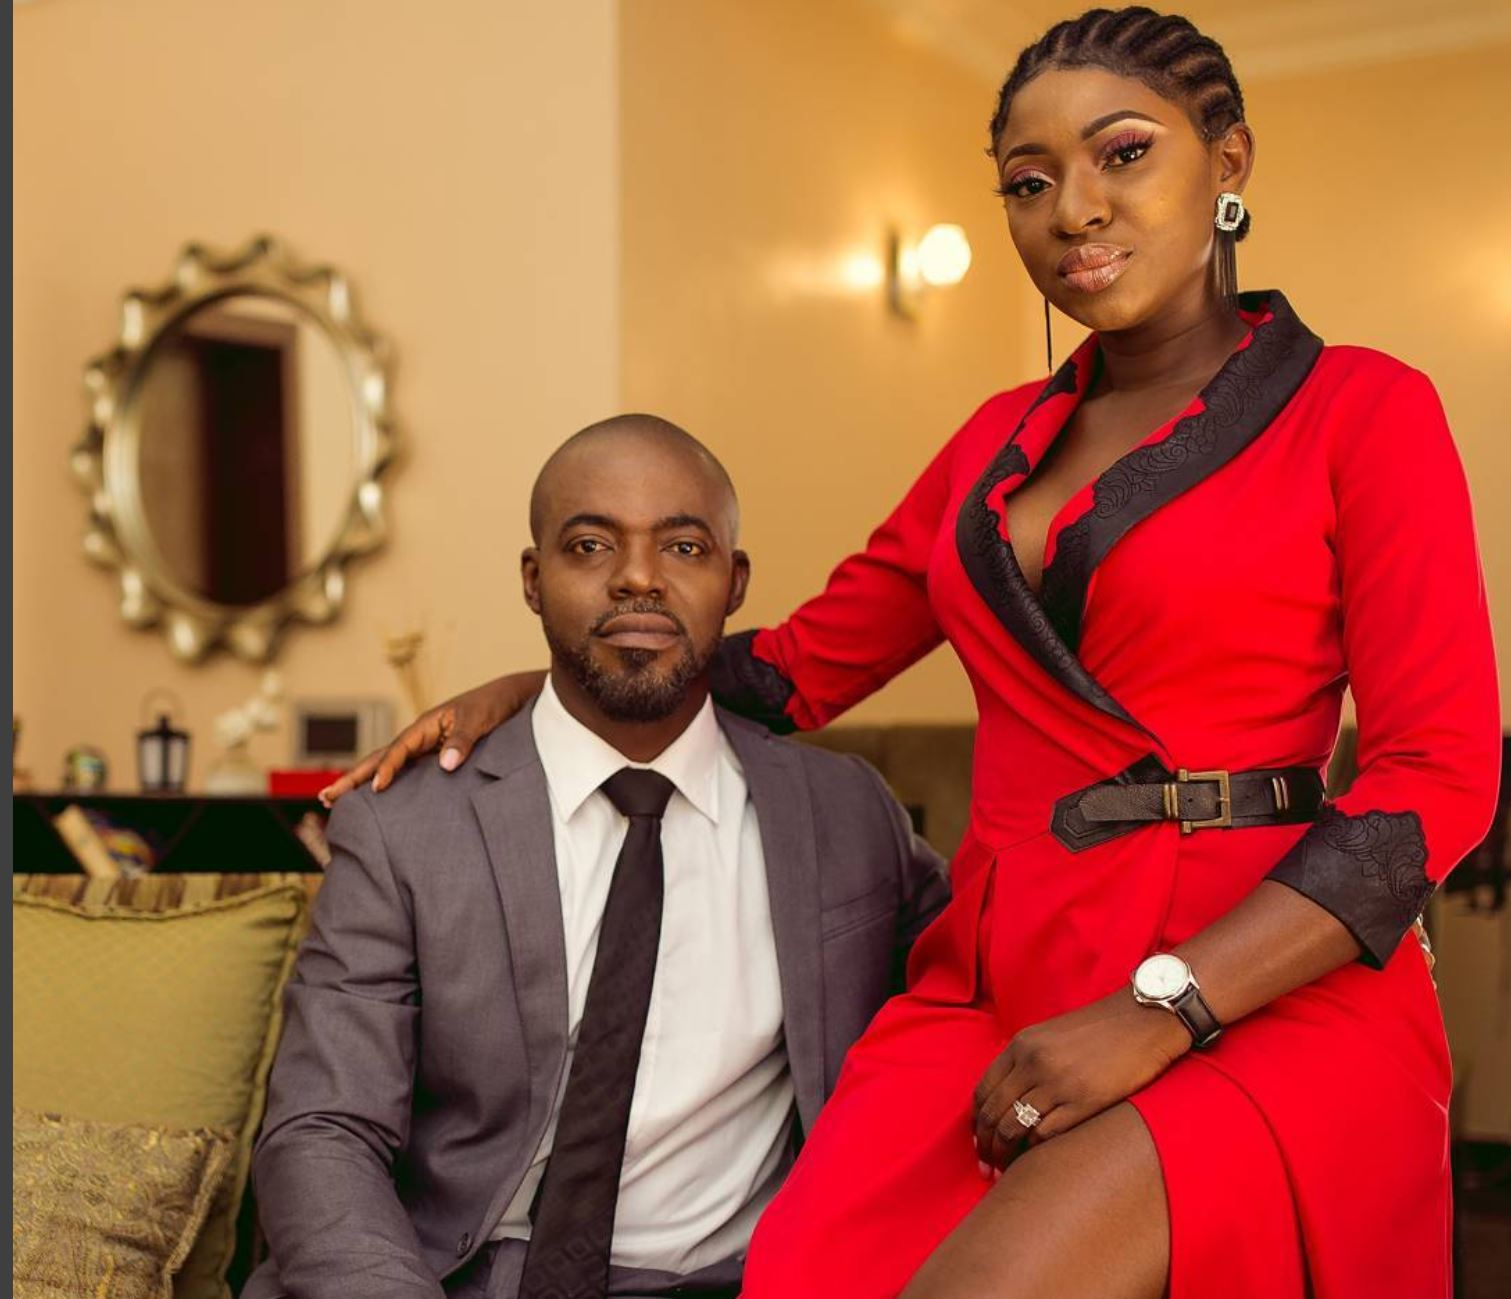 Yvonne Jegede's ex, Abounce spotted with son publicly [ARTICLE] - Pulse  Nigeria